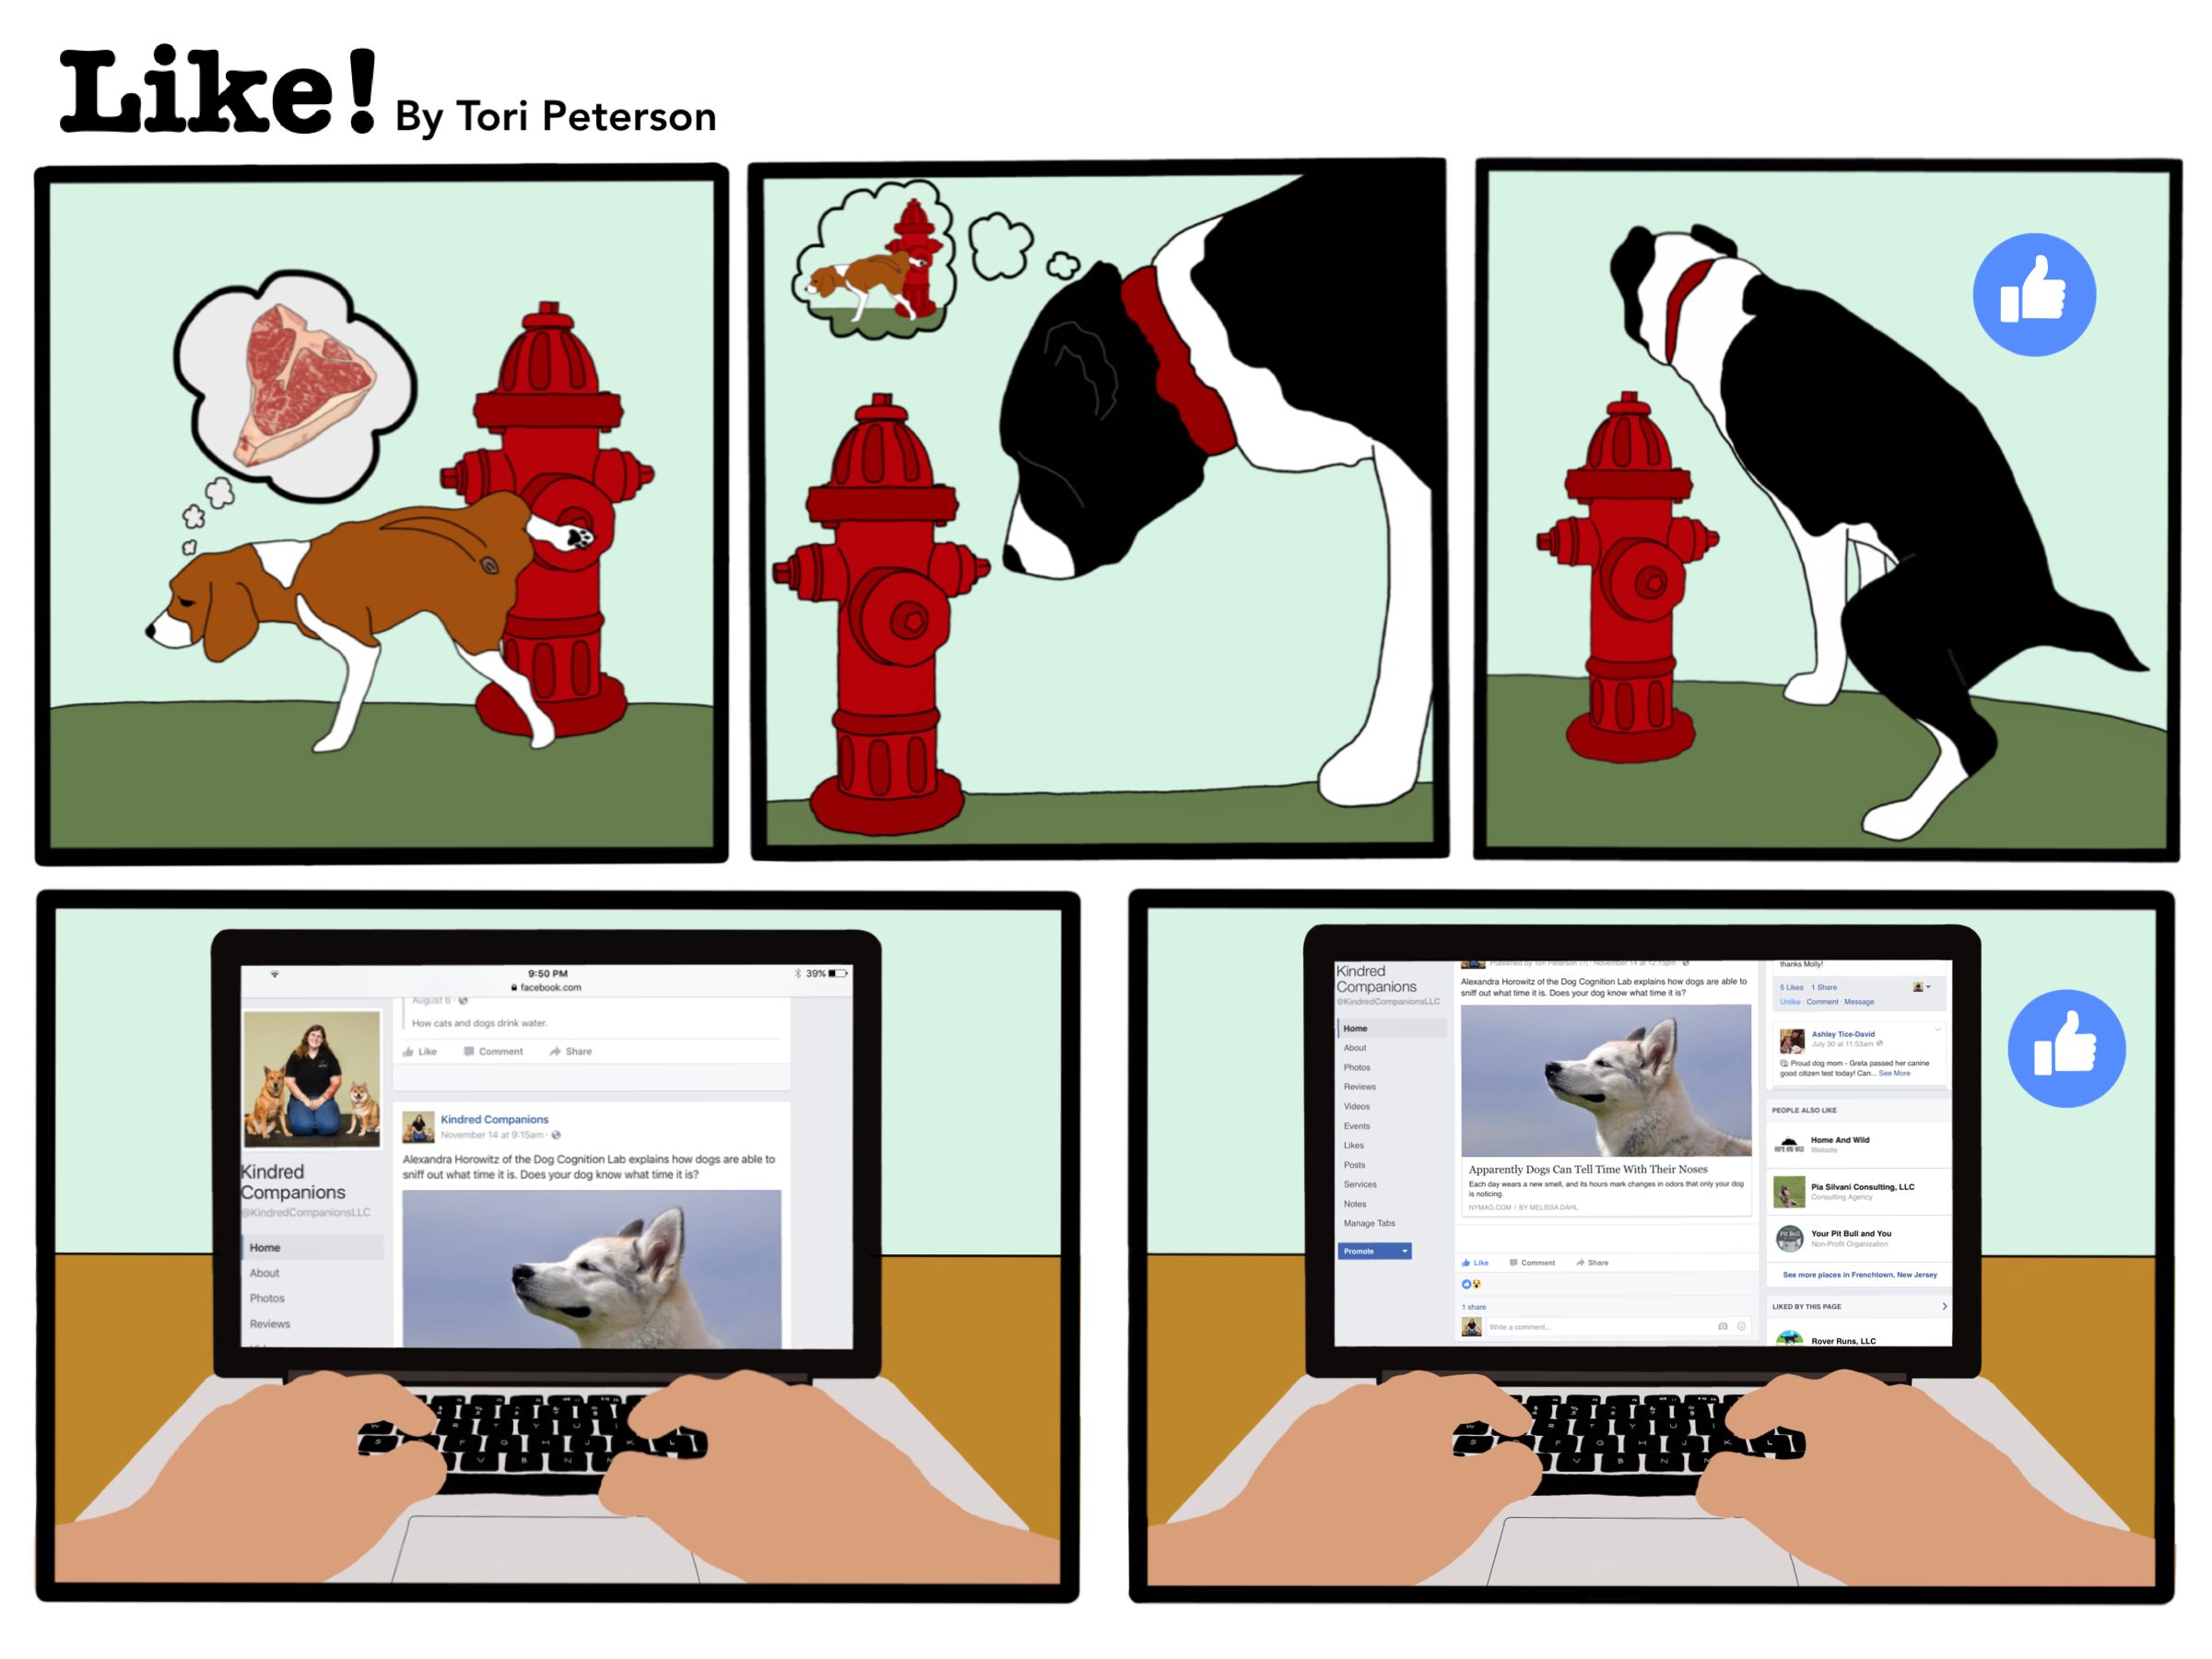 """Here a beagle is urinating on a fire hydrant and when the next dog walks up, she smells the beagle's pheromones and she marks the spot. To an extent, this is analogous to a person scrolling down facebook and """"liking"""" a post."""